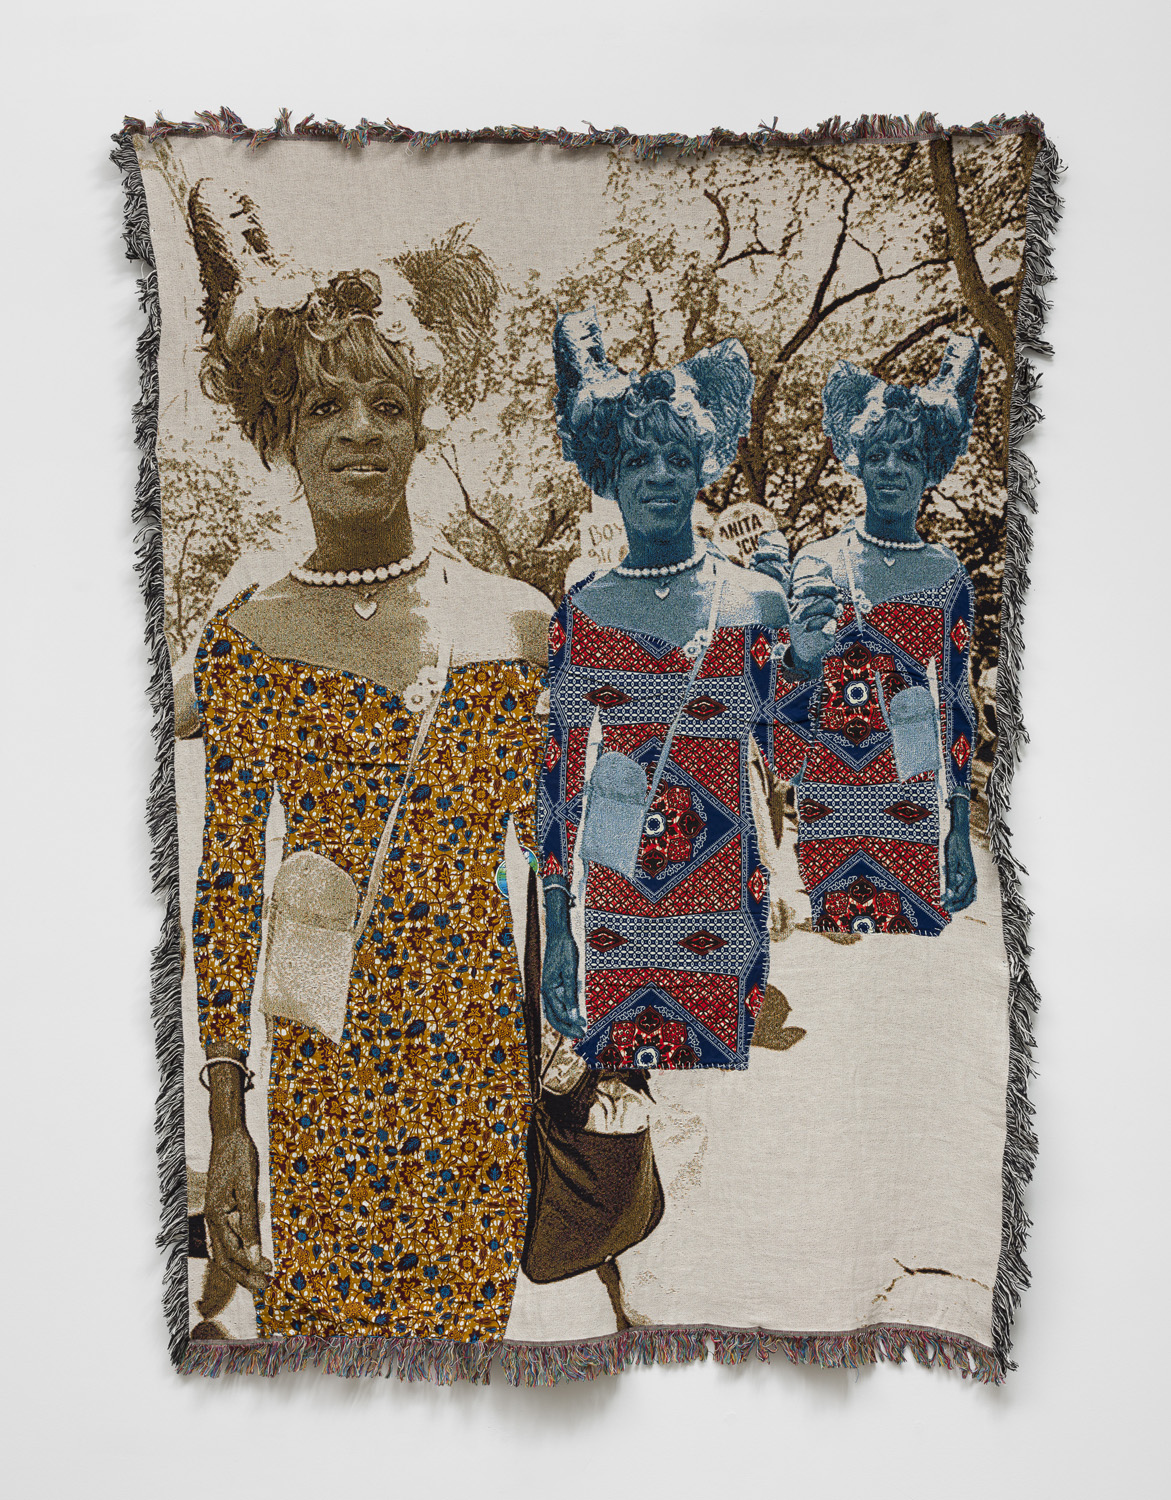 blanket piece by april bey, image of marsha p johnson relayed in different fabrics